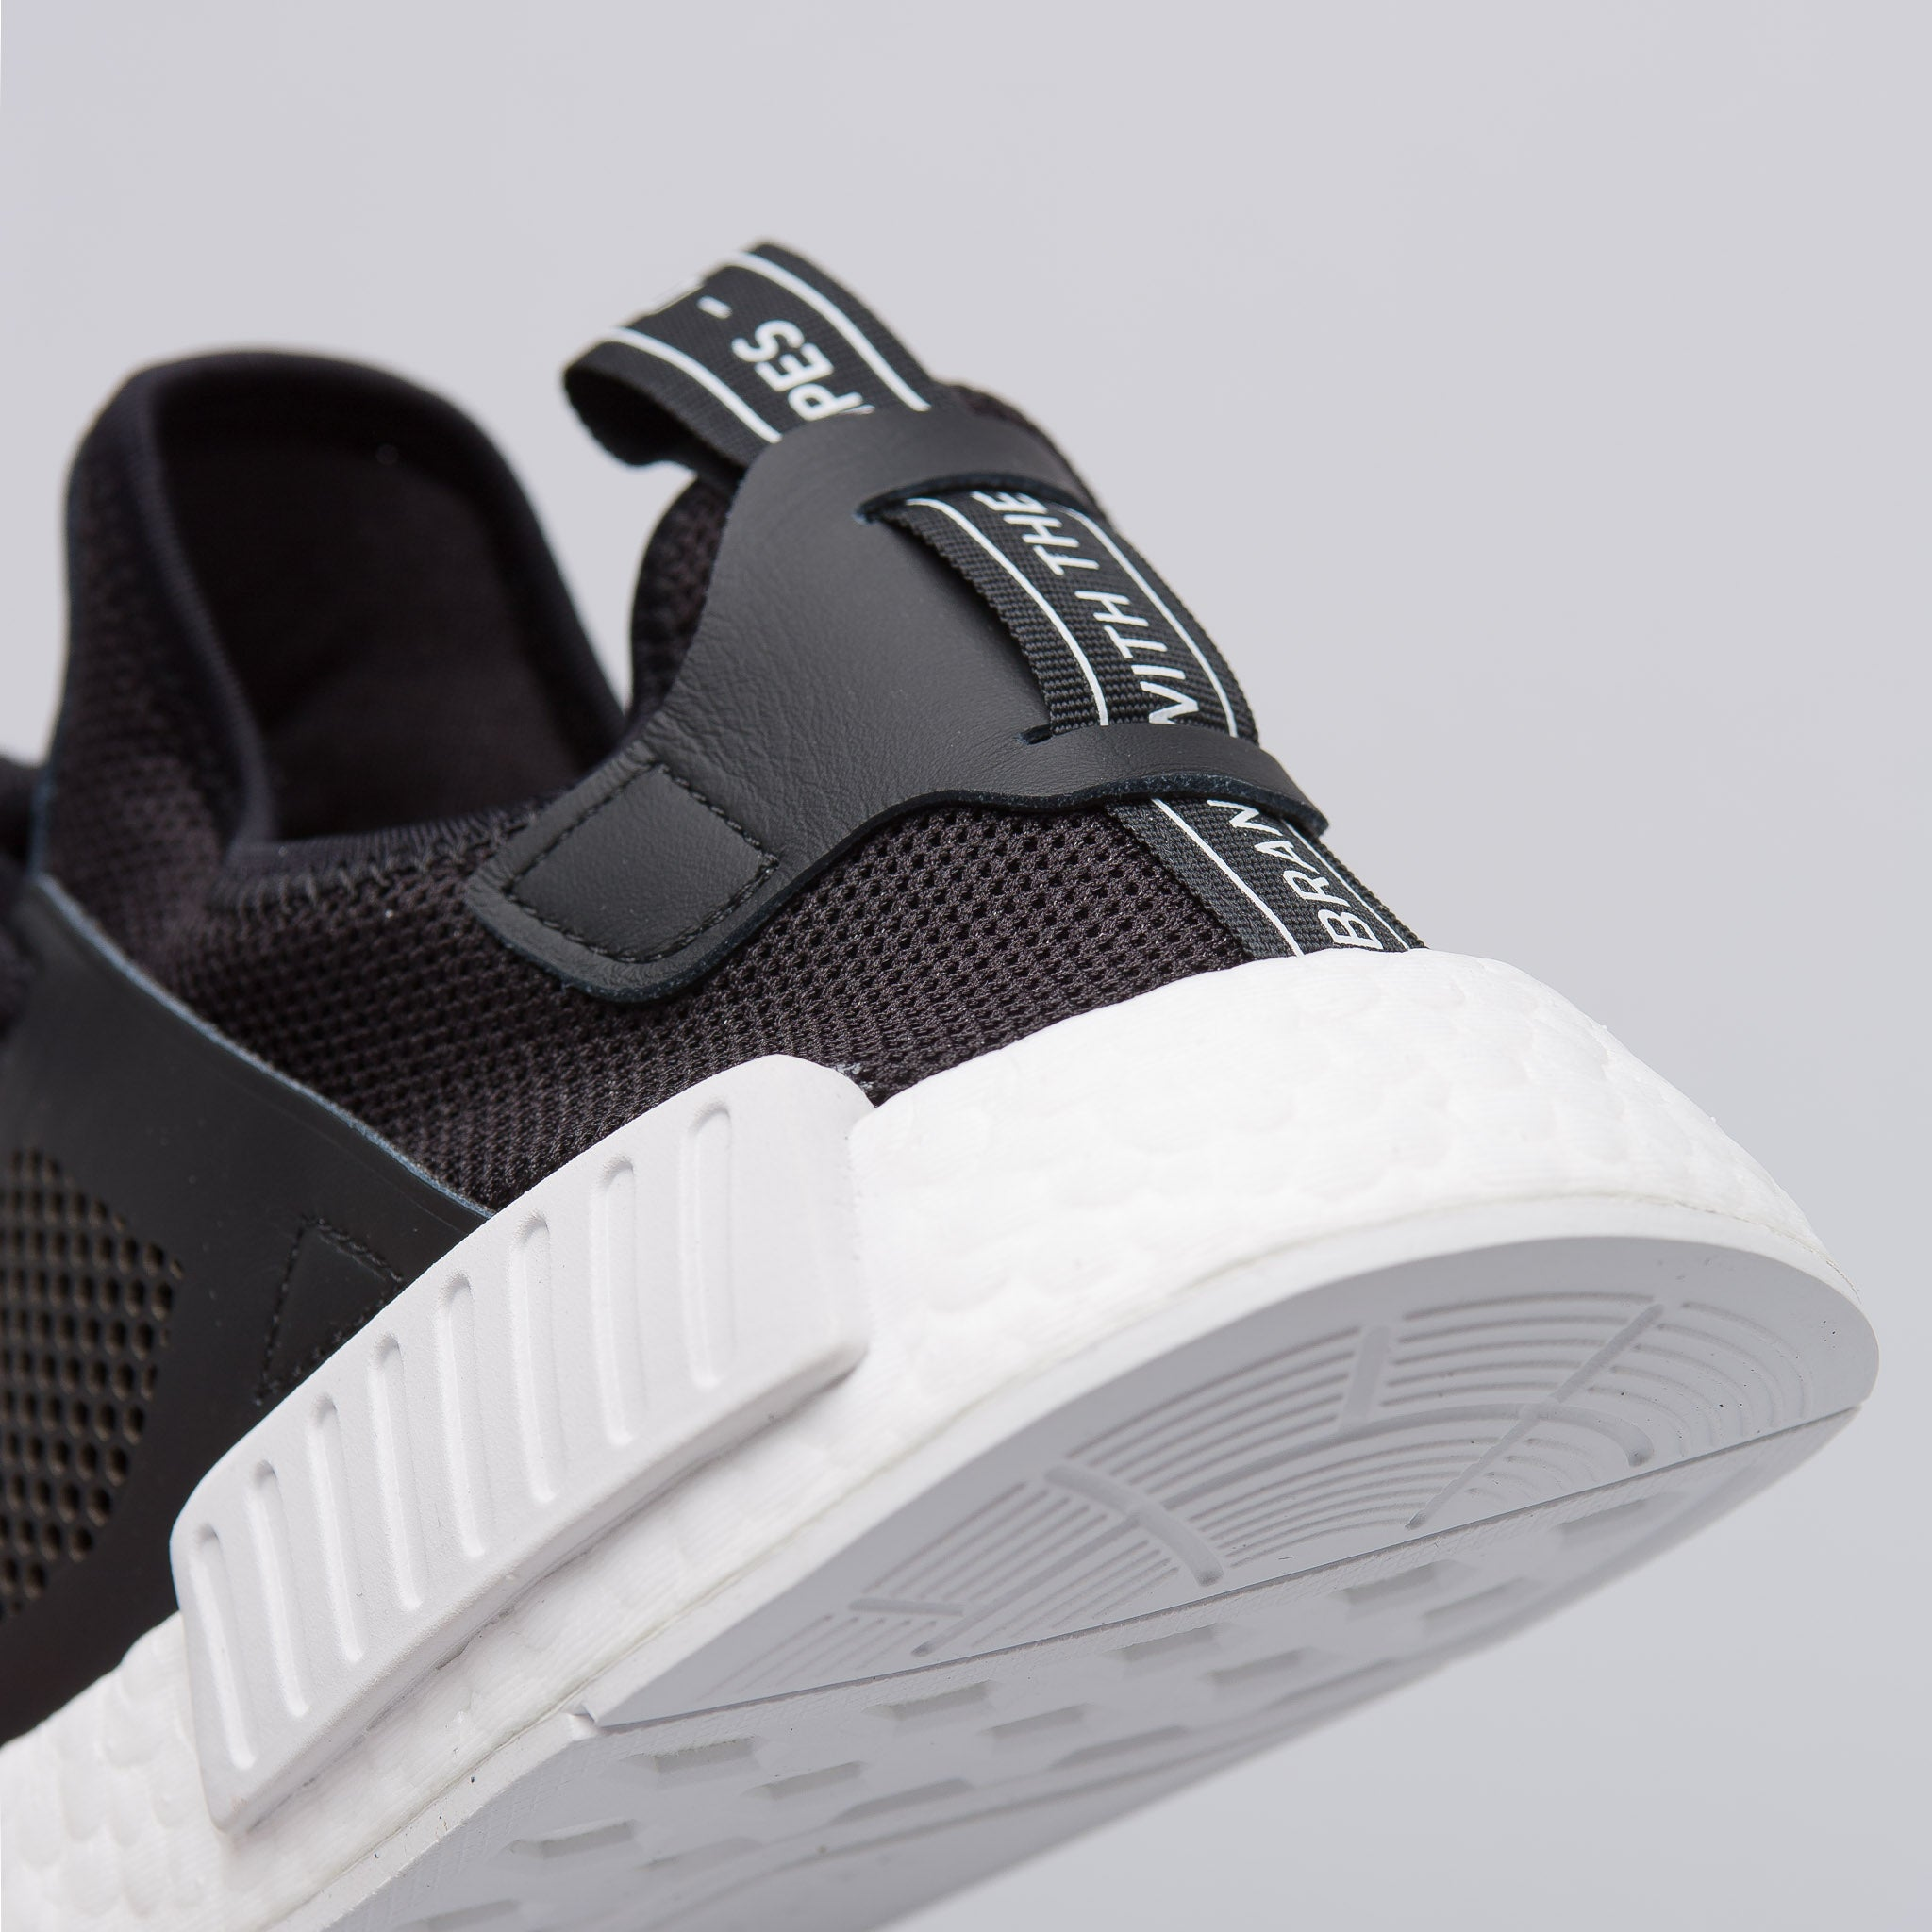 adidas nmd r1 pk gum pack adidas shoes for boys size 75